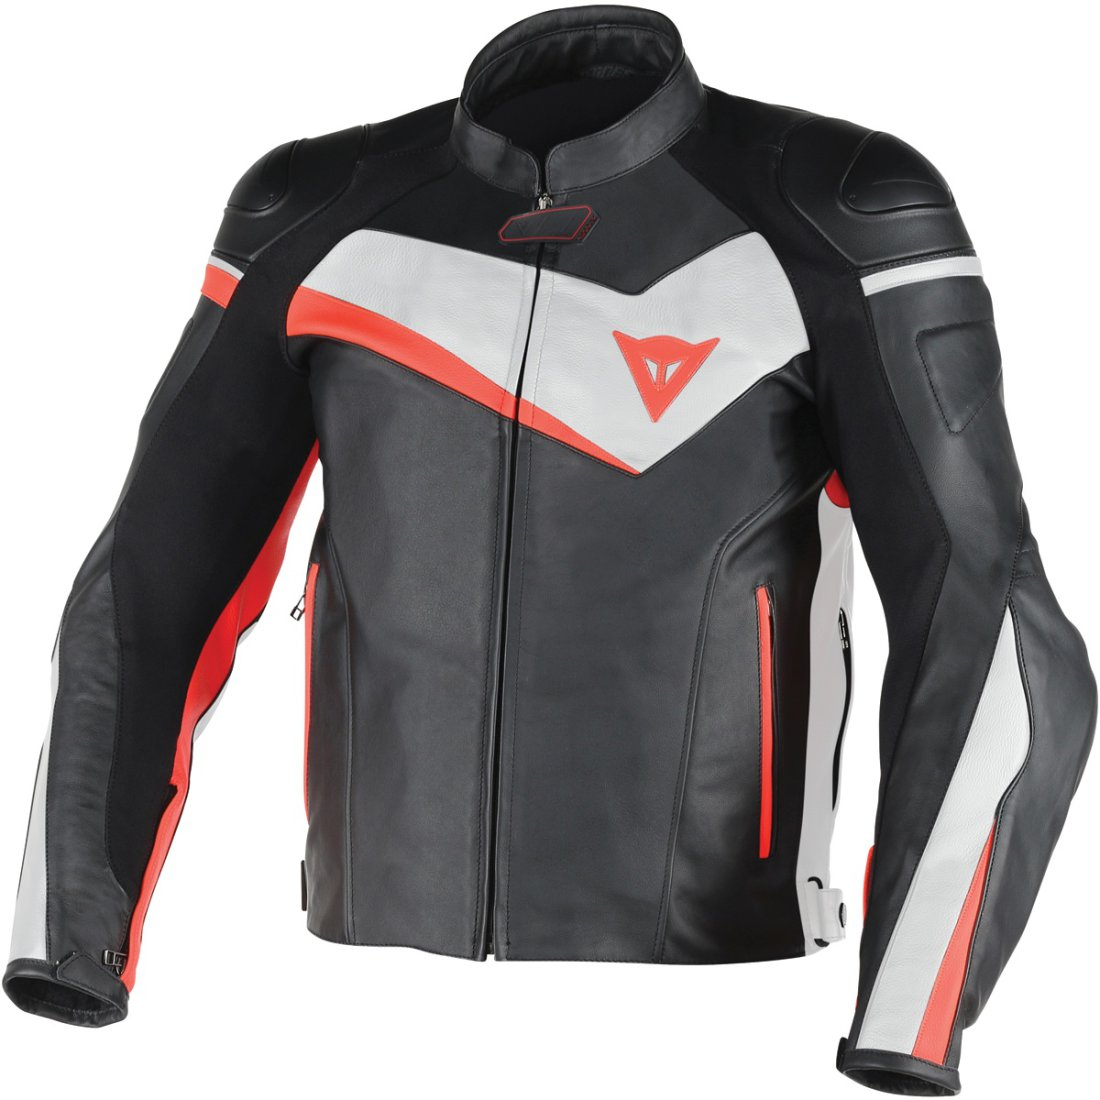 DAINESE Veloster Black / White / Fluo-Red Jacket